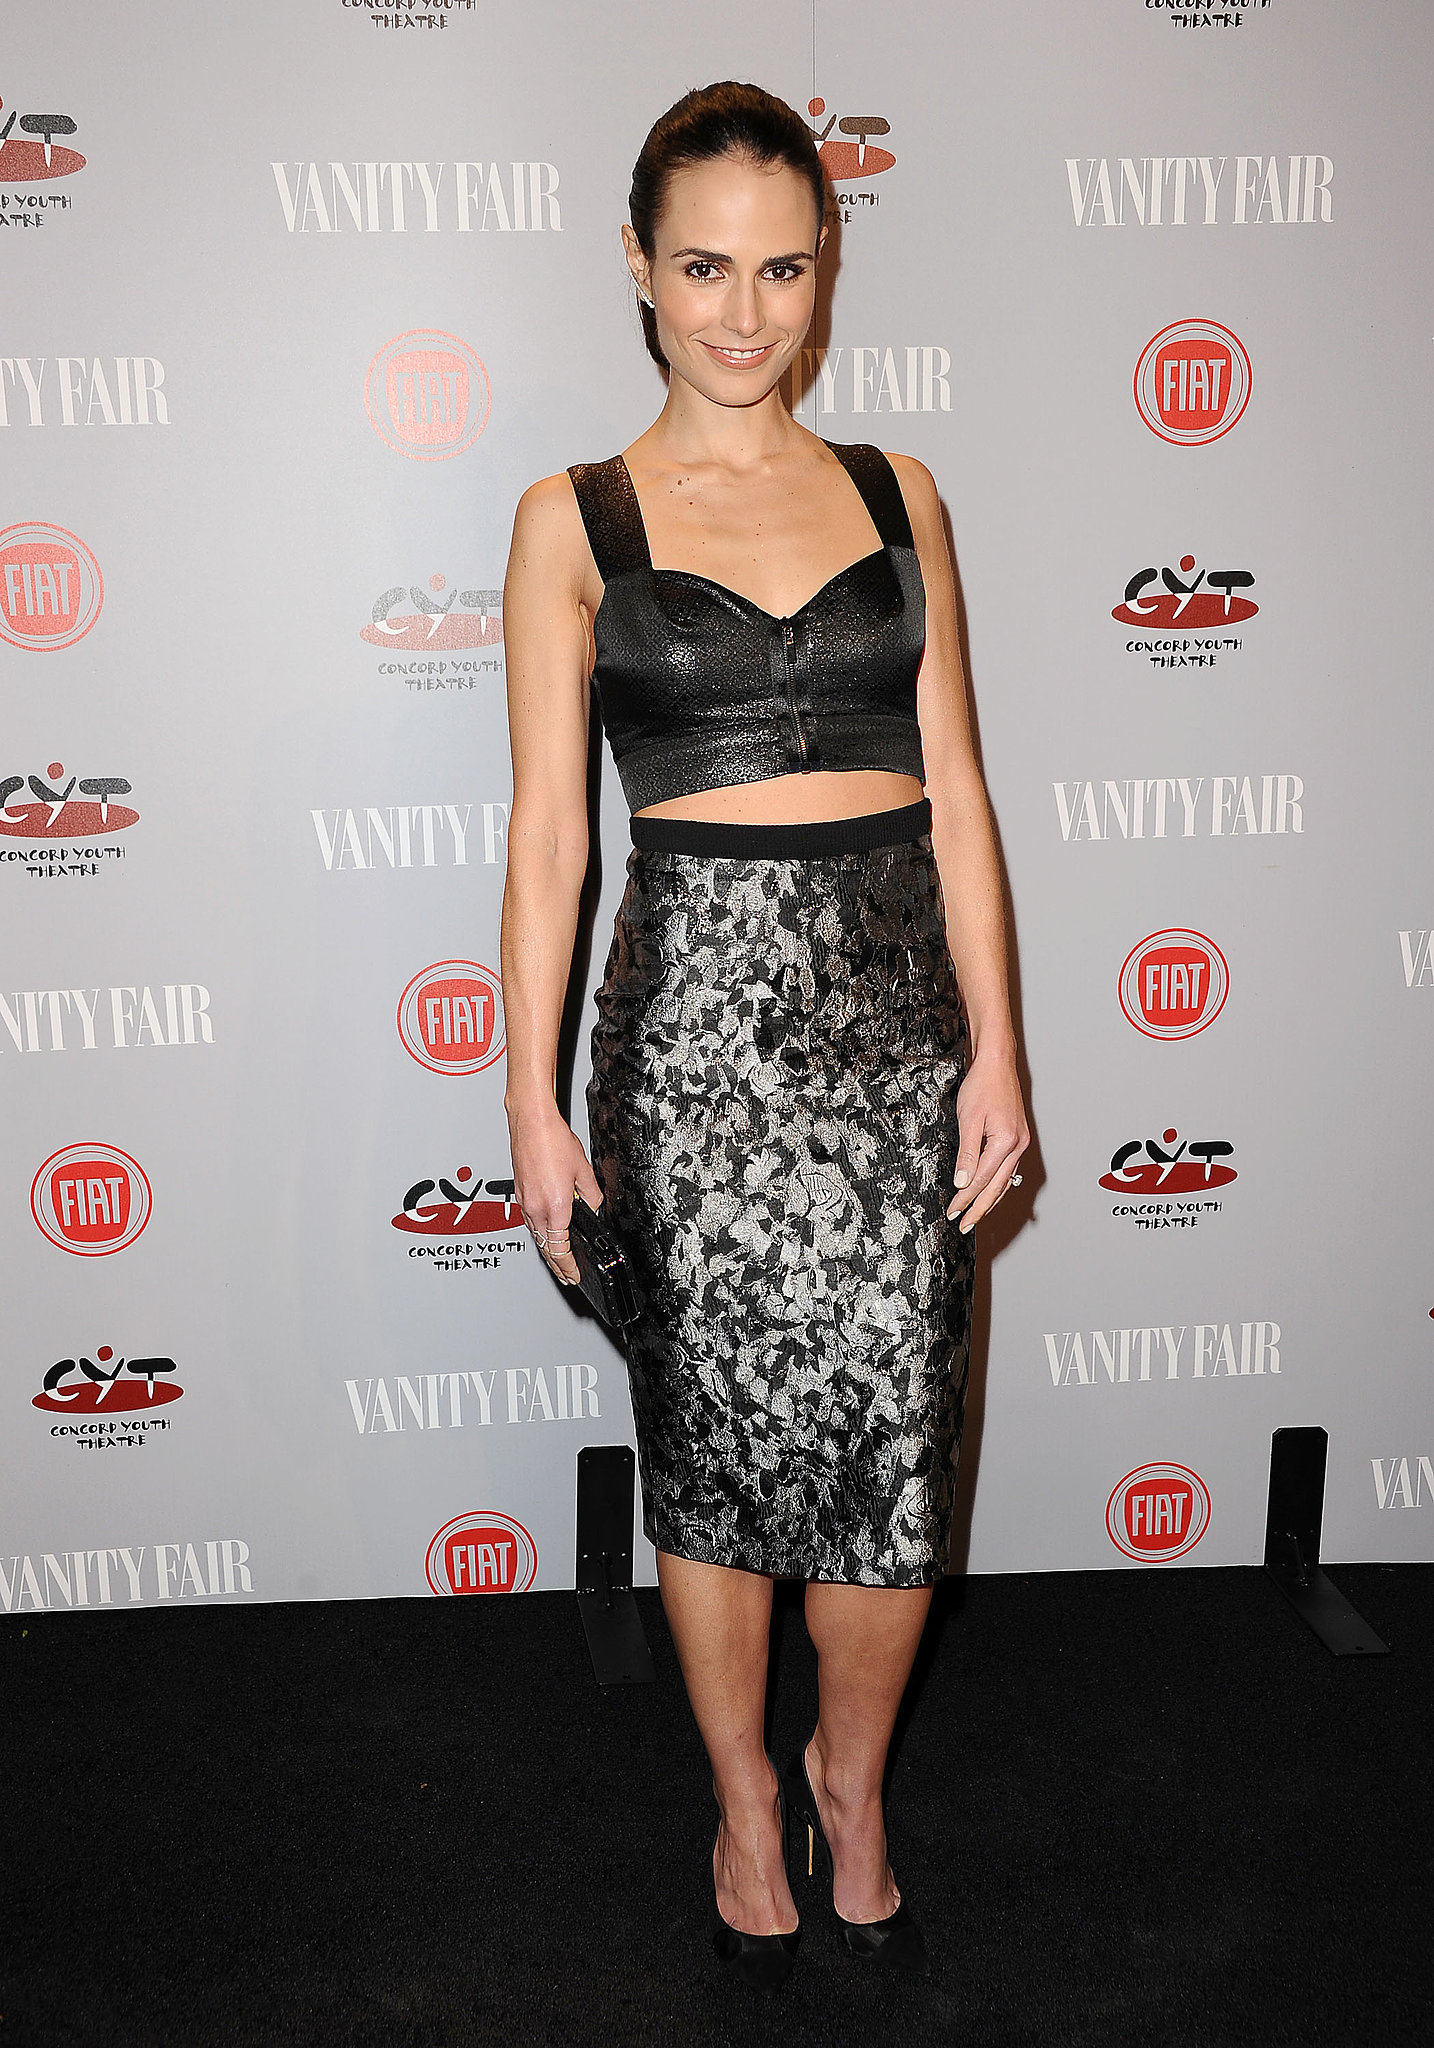 Jordana Brewster's look was fast and furious.